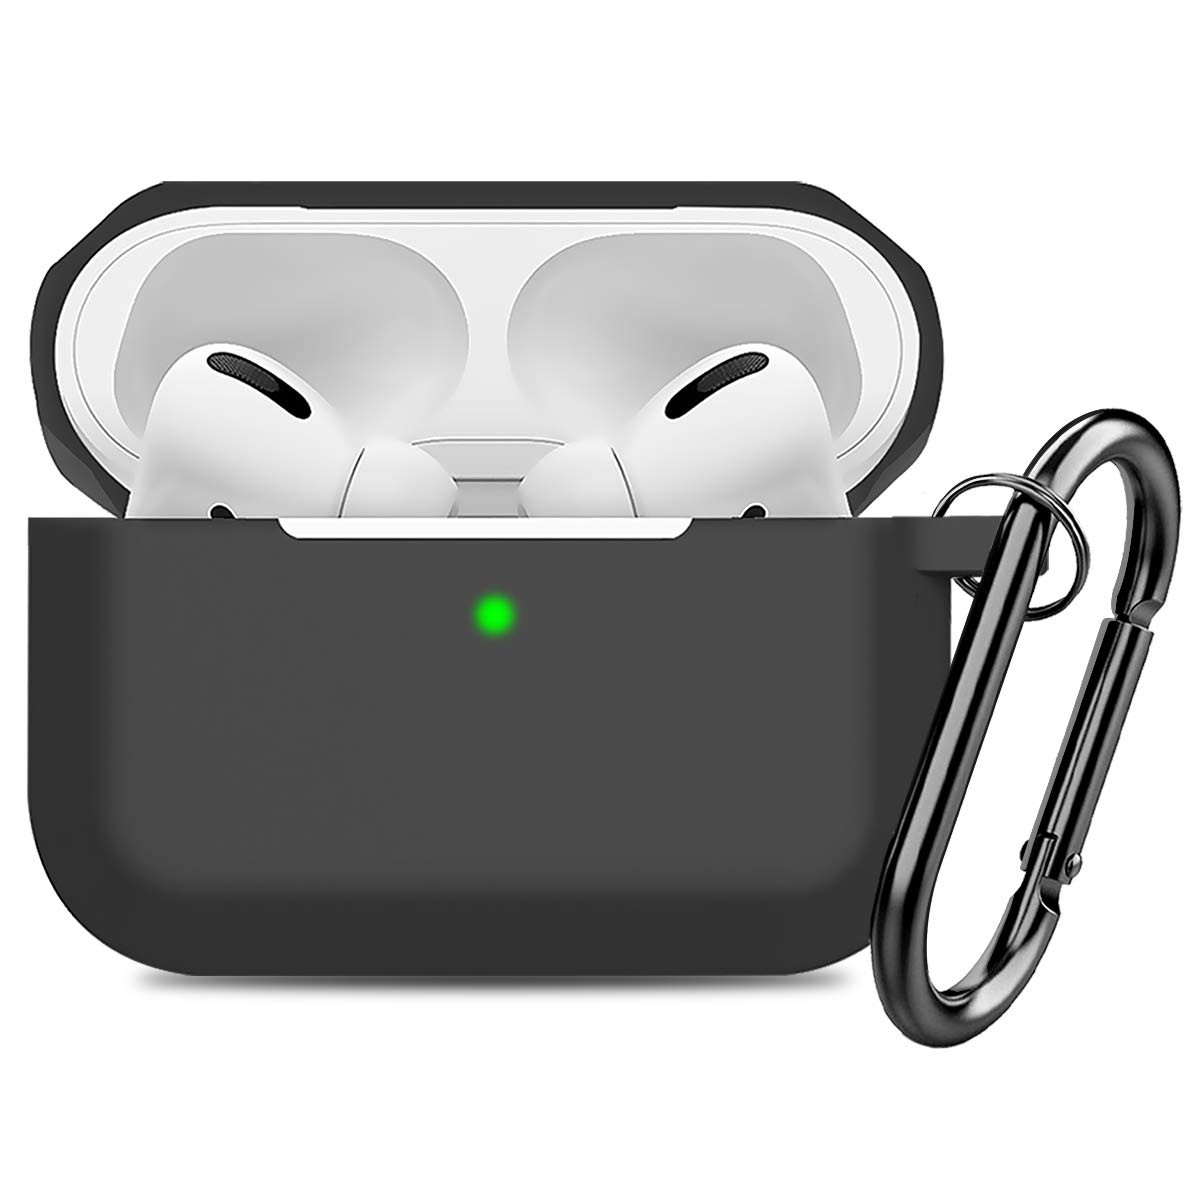 Best Apple Airpods Protective Cases For Airpods Pro Airpods 2 2020 Updated Thenewwallet